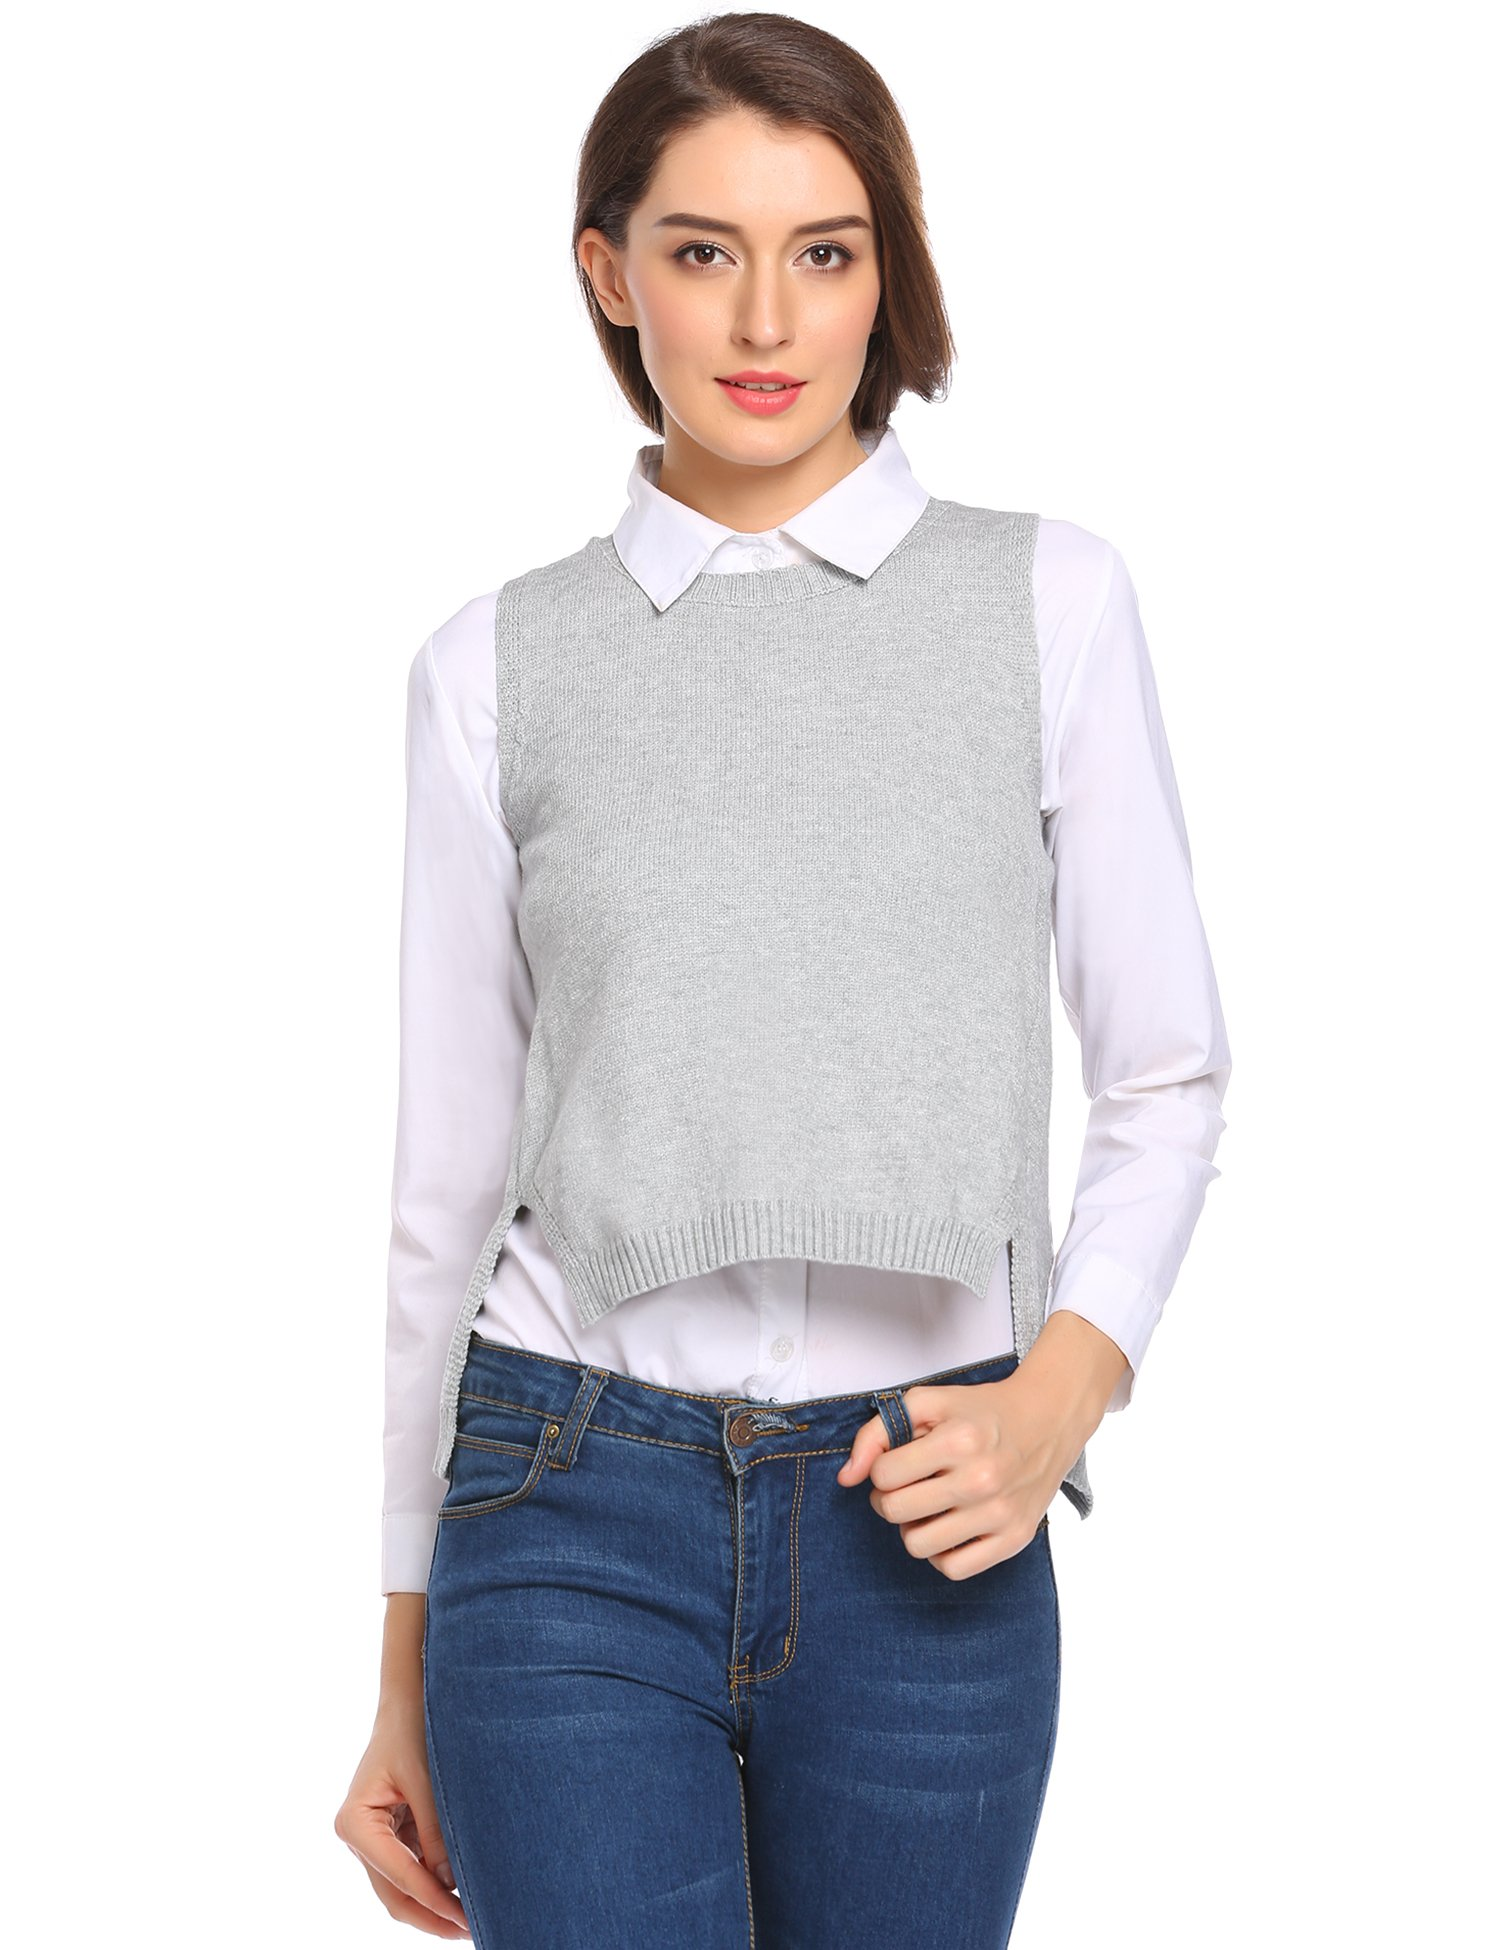 Zeagoo Women'S Thick Crewneck Knit Pullover Fashion College Sweater Vest Gray XL